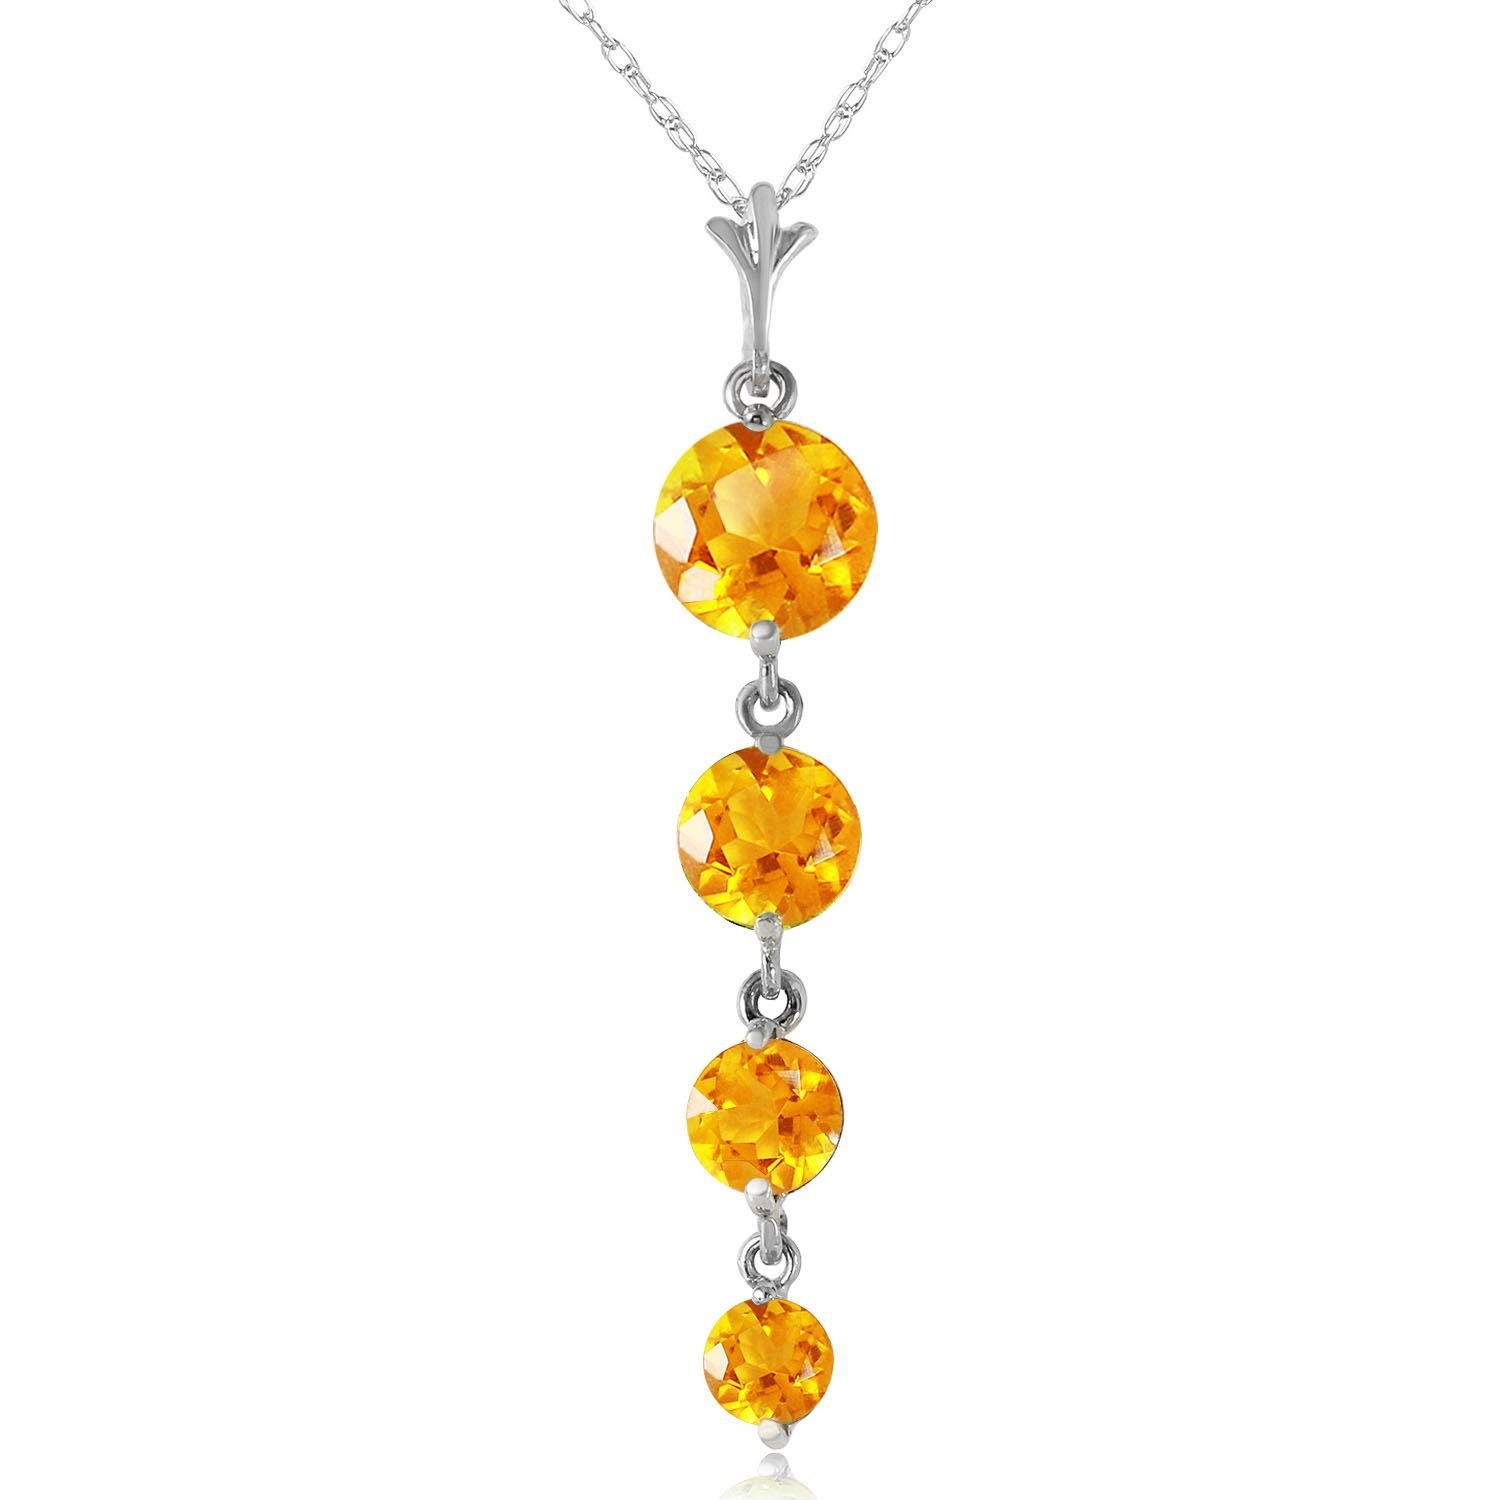 ALARRI 3.9 Carat 14K Solid White Gold Love Course Citrine Necklace with 18 Inch Chain Length